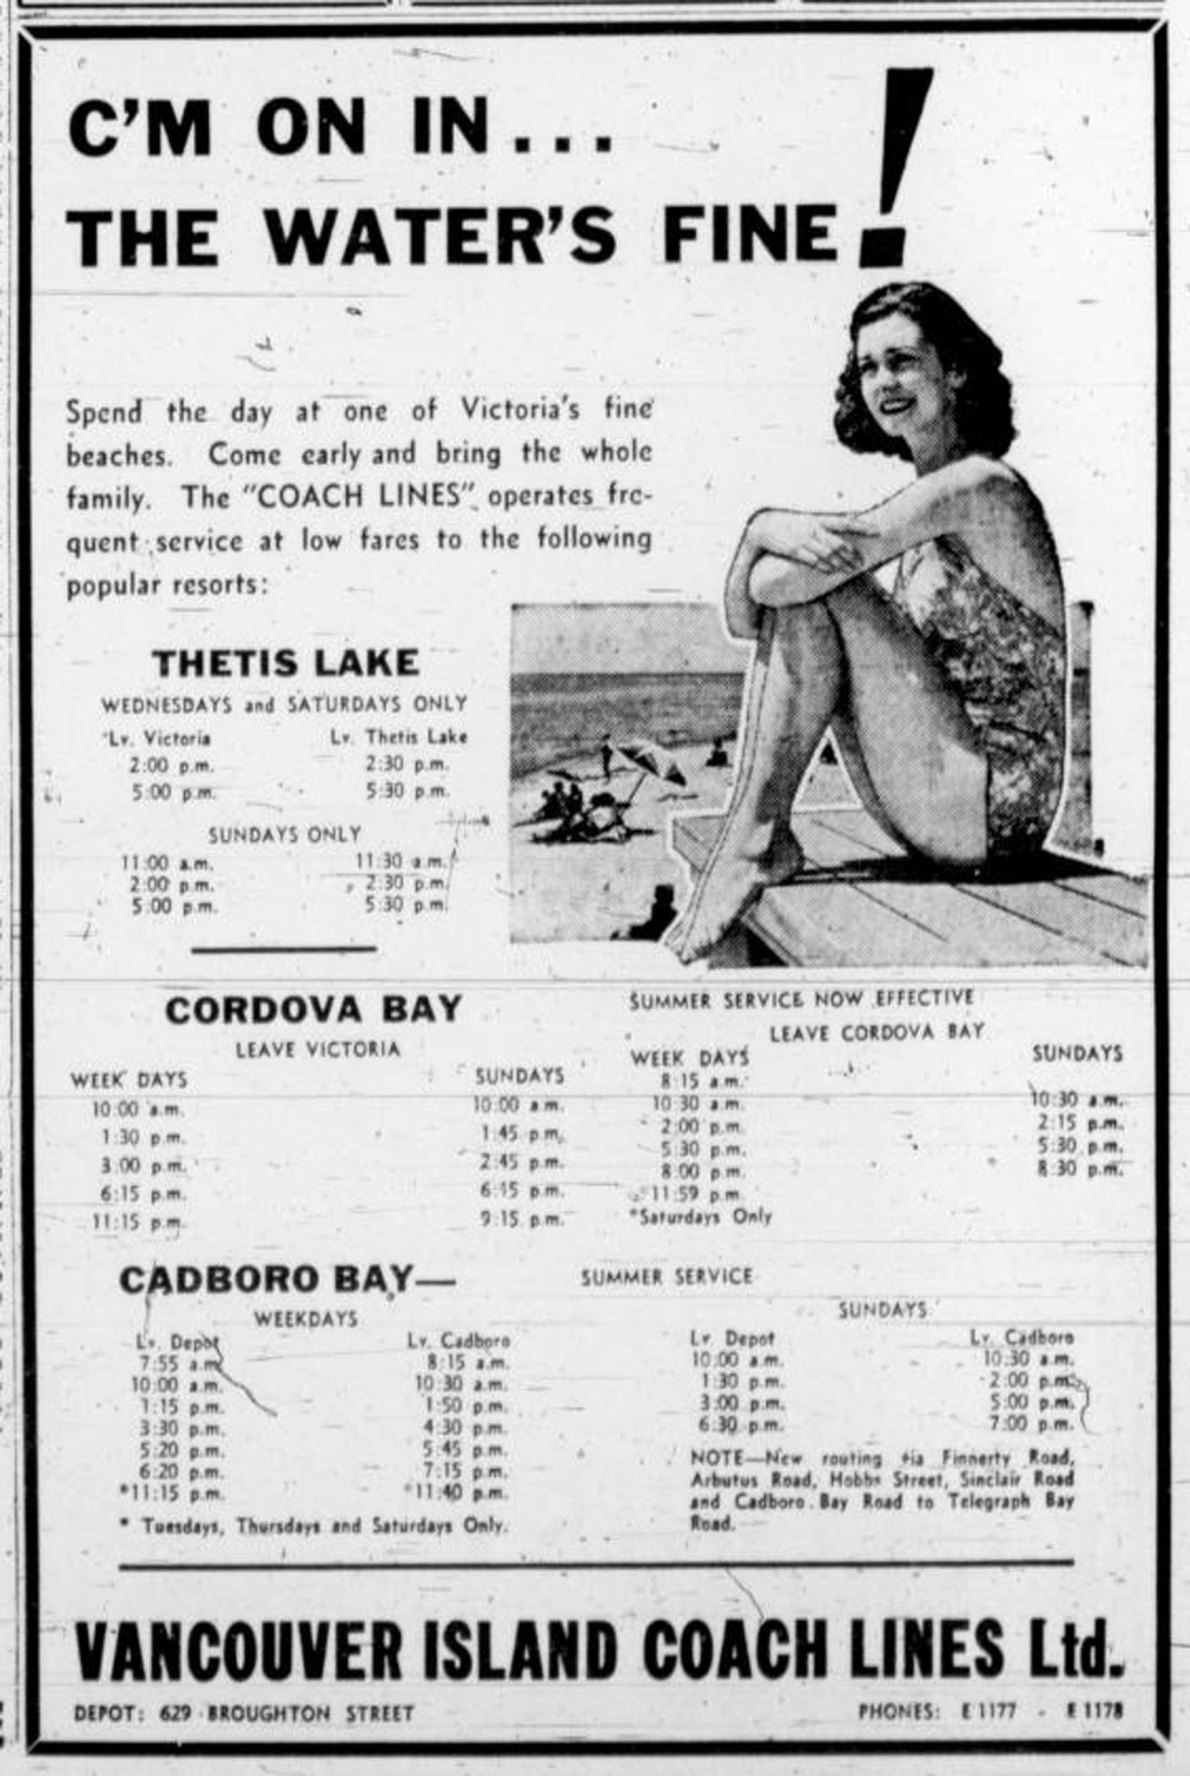 1940 Vancouver Island Coach Lines advertisement for Victoria beaches: Thetis Lake, Cordova Bay, Cadboro Bay (Victorian Online Sightseeing Tours collection)